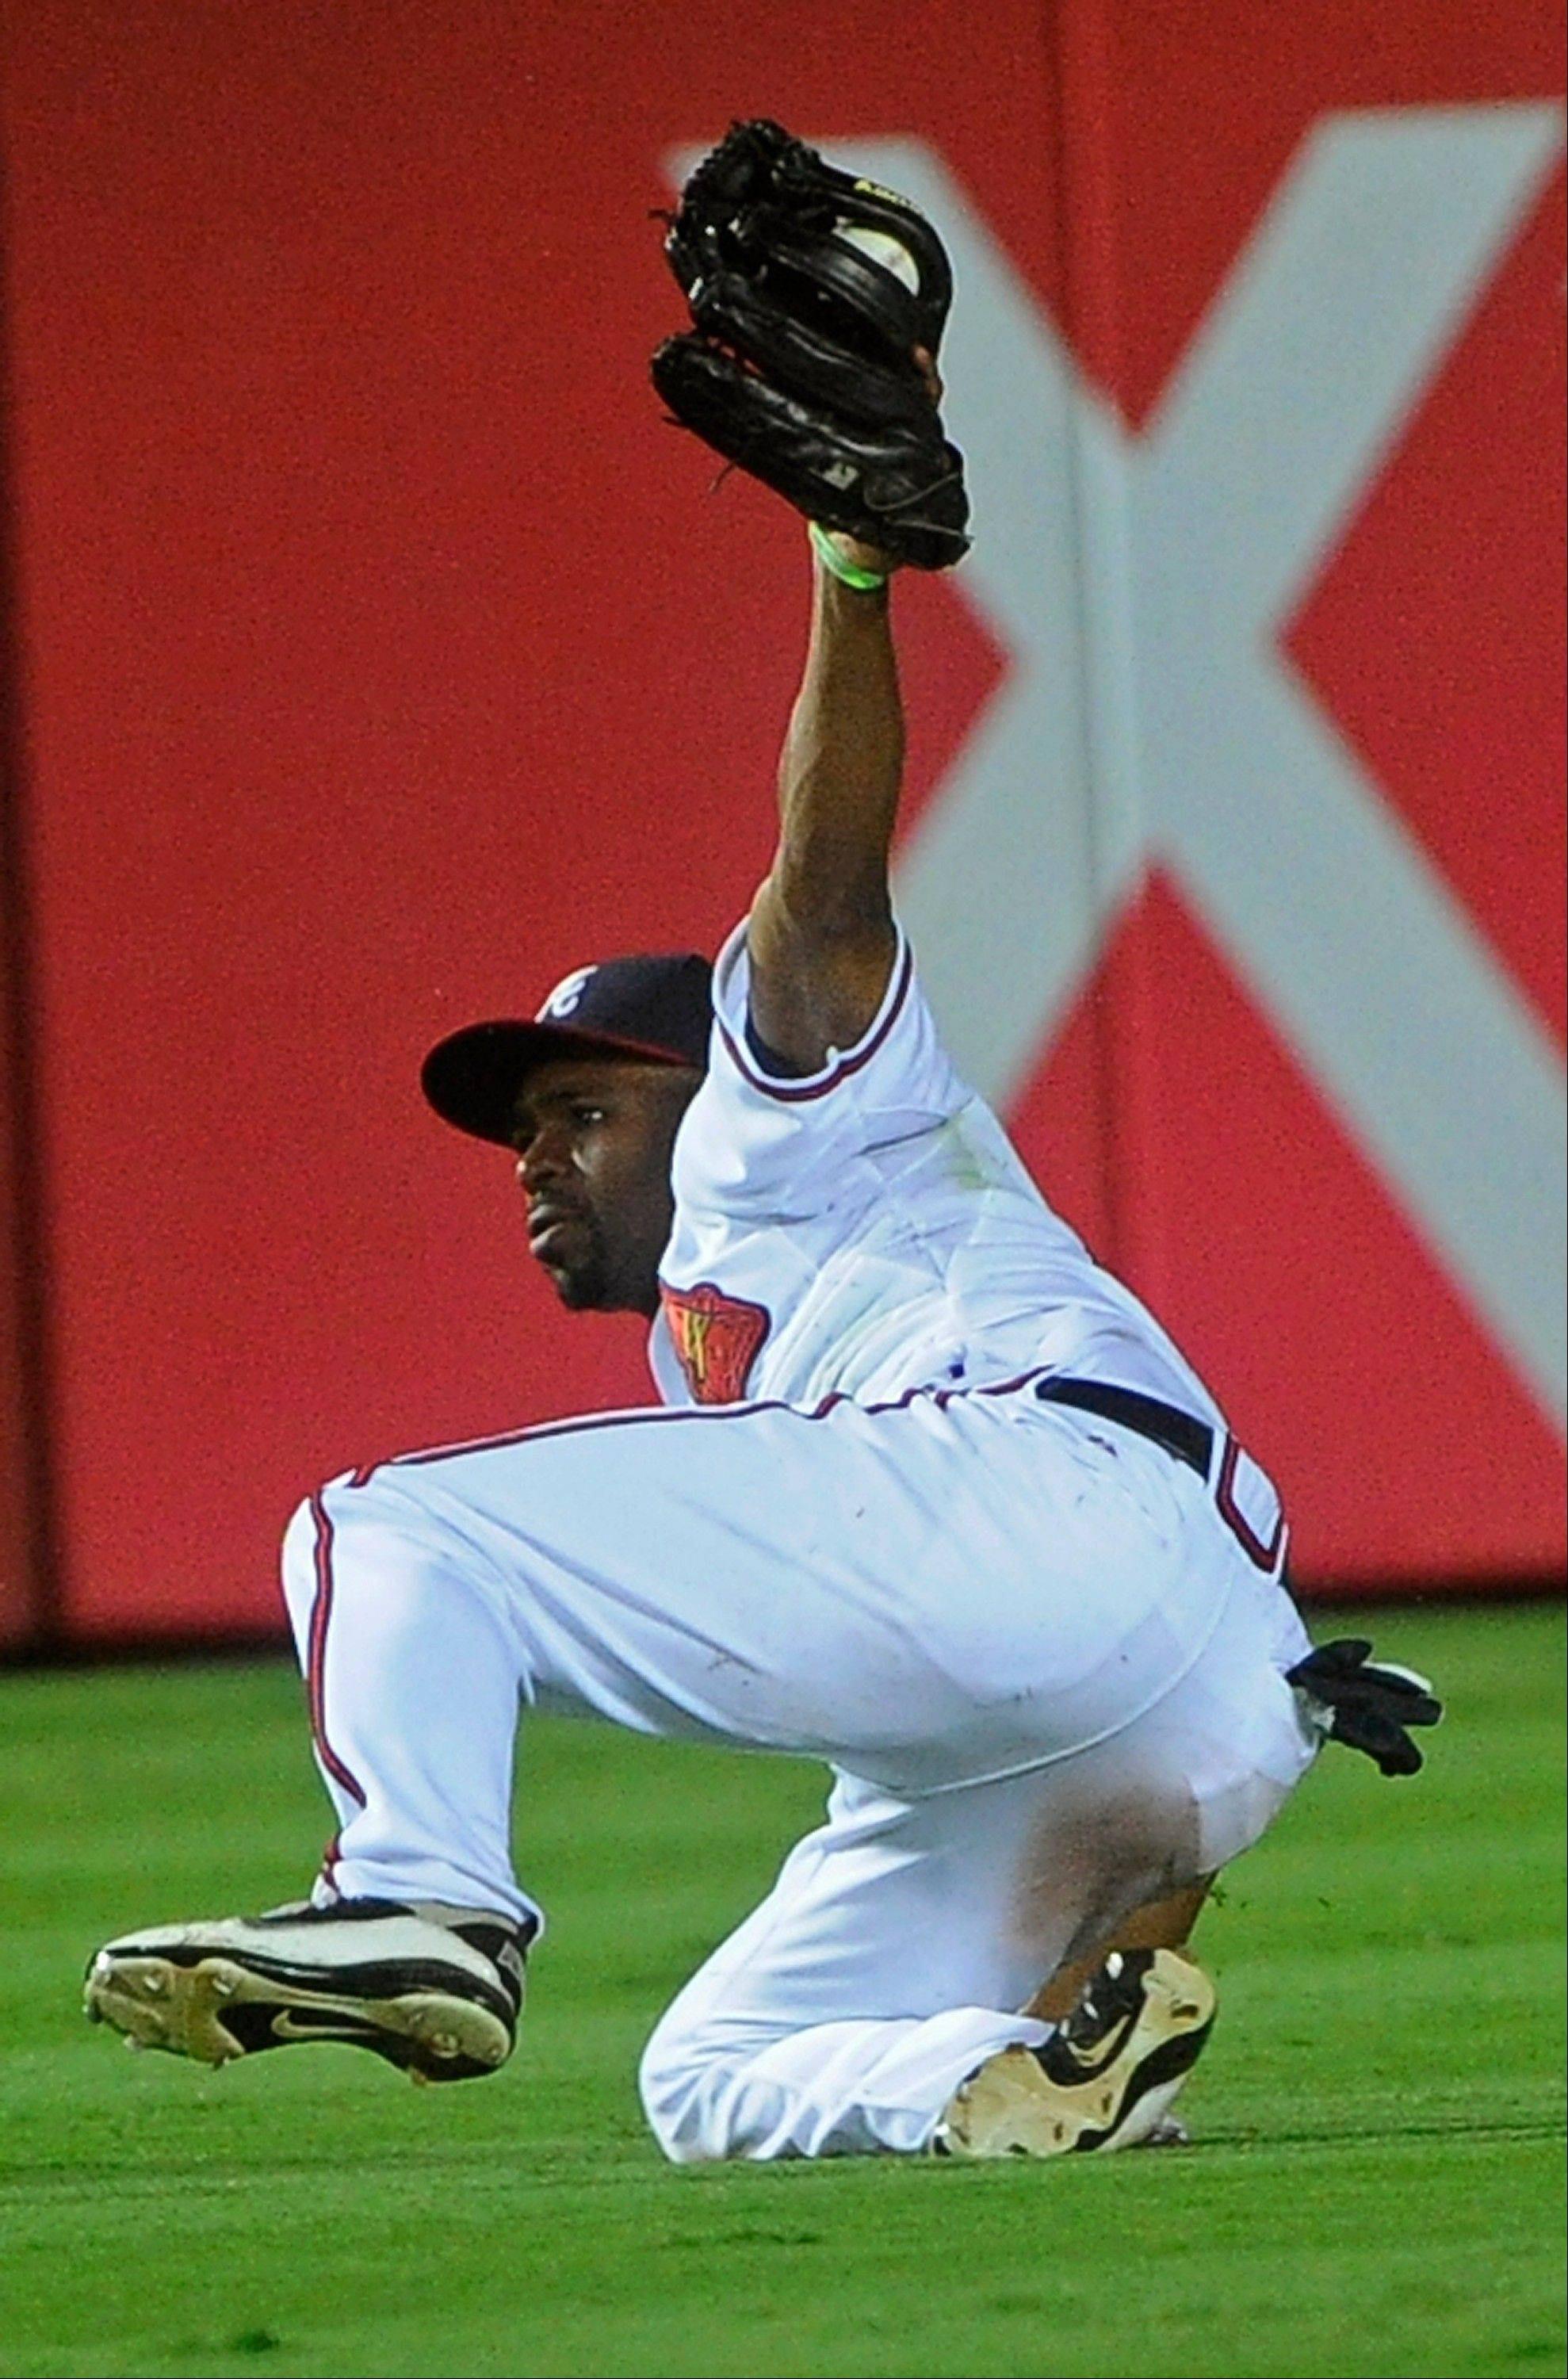 Braves center fielder Michael Bourn comes up with a diving catch on the fly ball hit by the Marlins' Bryan Petersen during the seventh inning Tuesday in Atlanta.